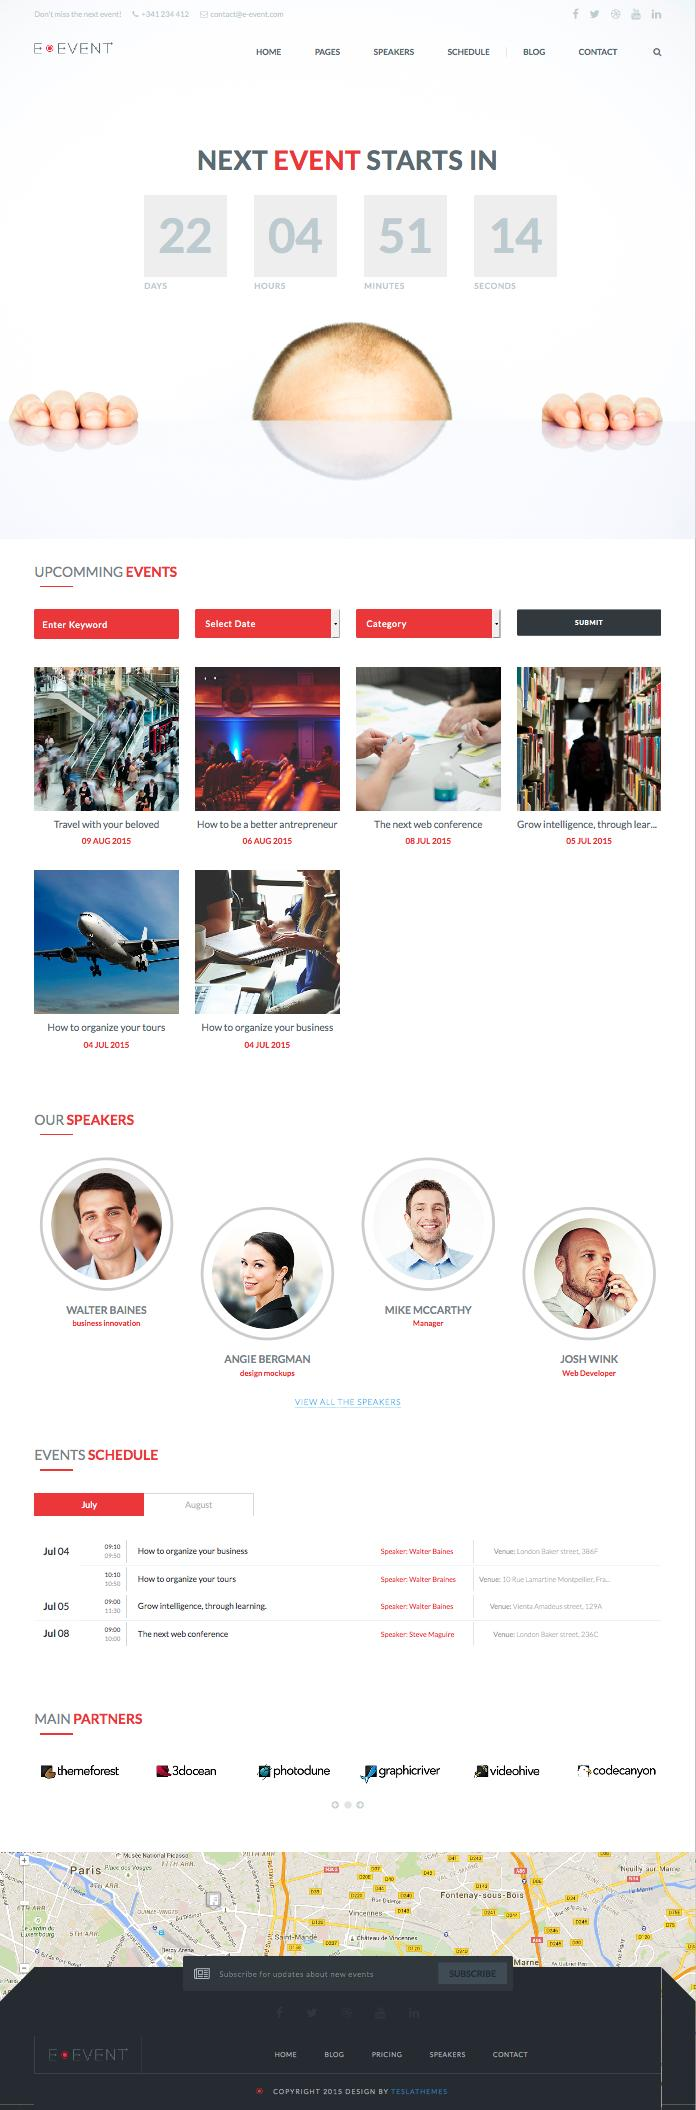 E-event WordPress Events & Meeting Schedules Theme